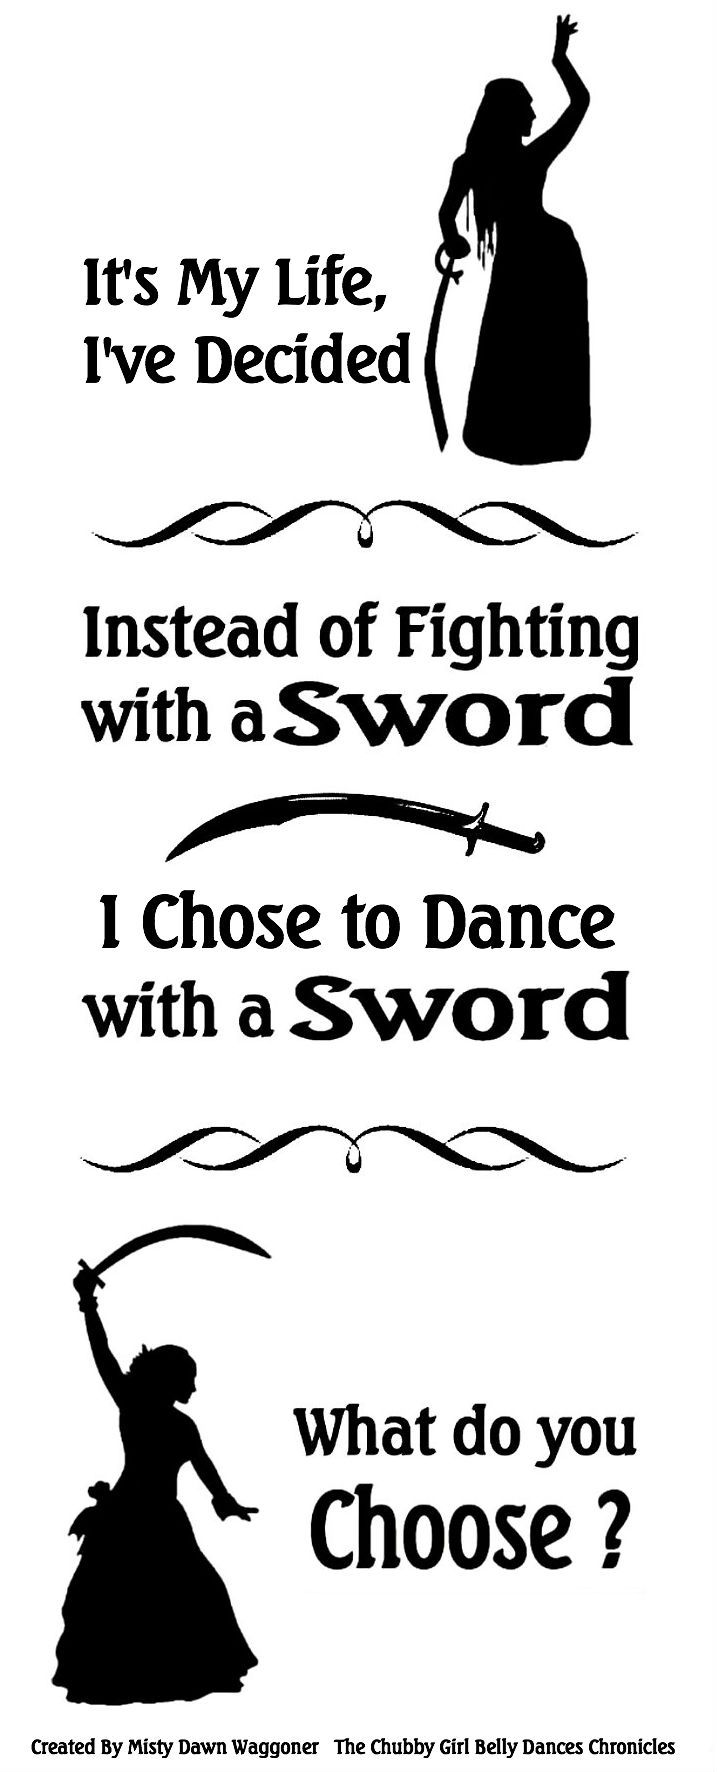 Funny, since I have yet to do sword work in dance, BUT I've fought with swords (but not simitars)